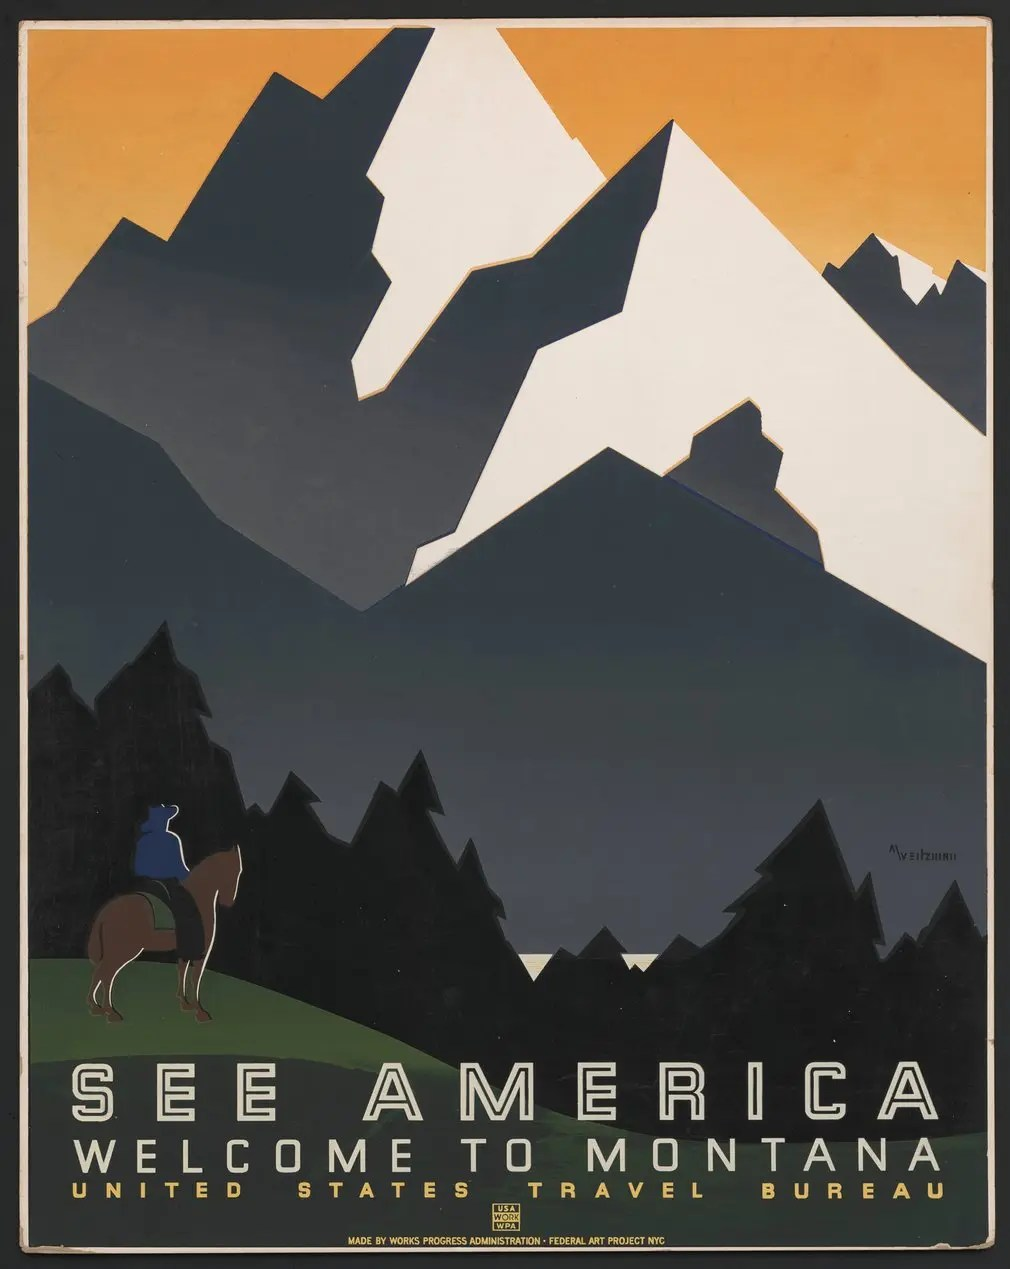 Montana, United States Travel Bureau, late 1930s.